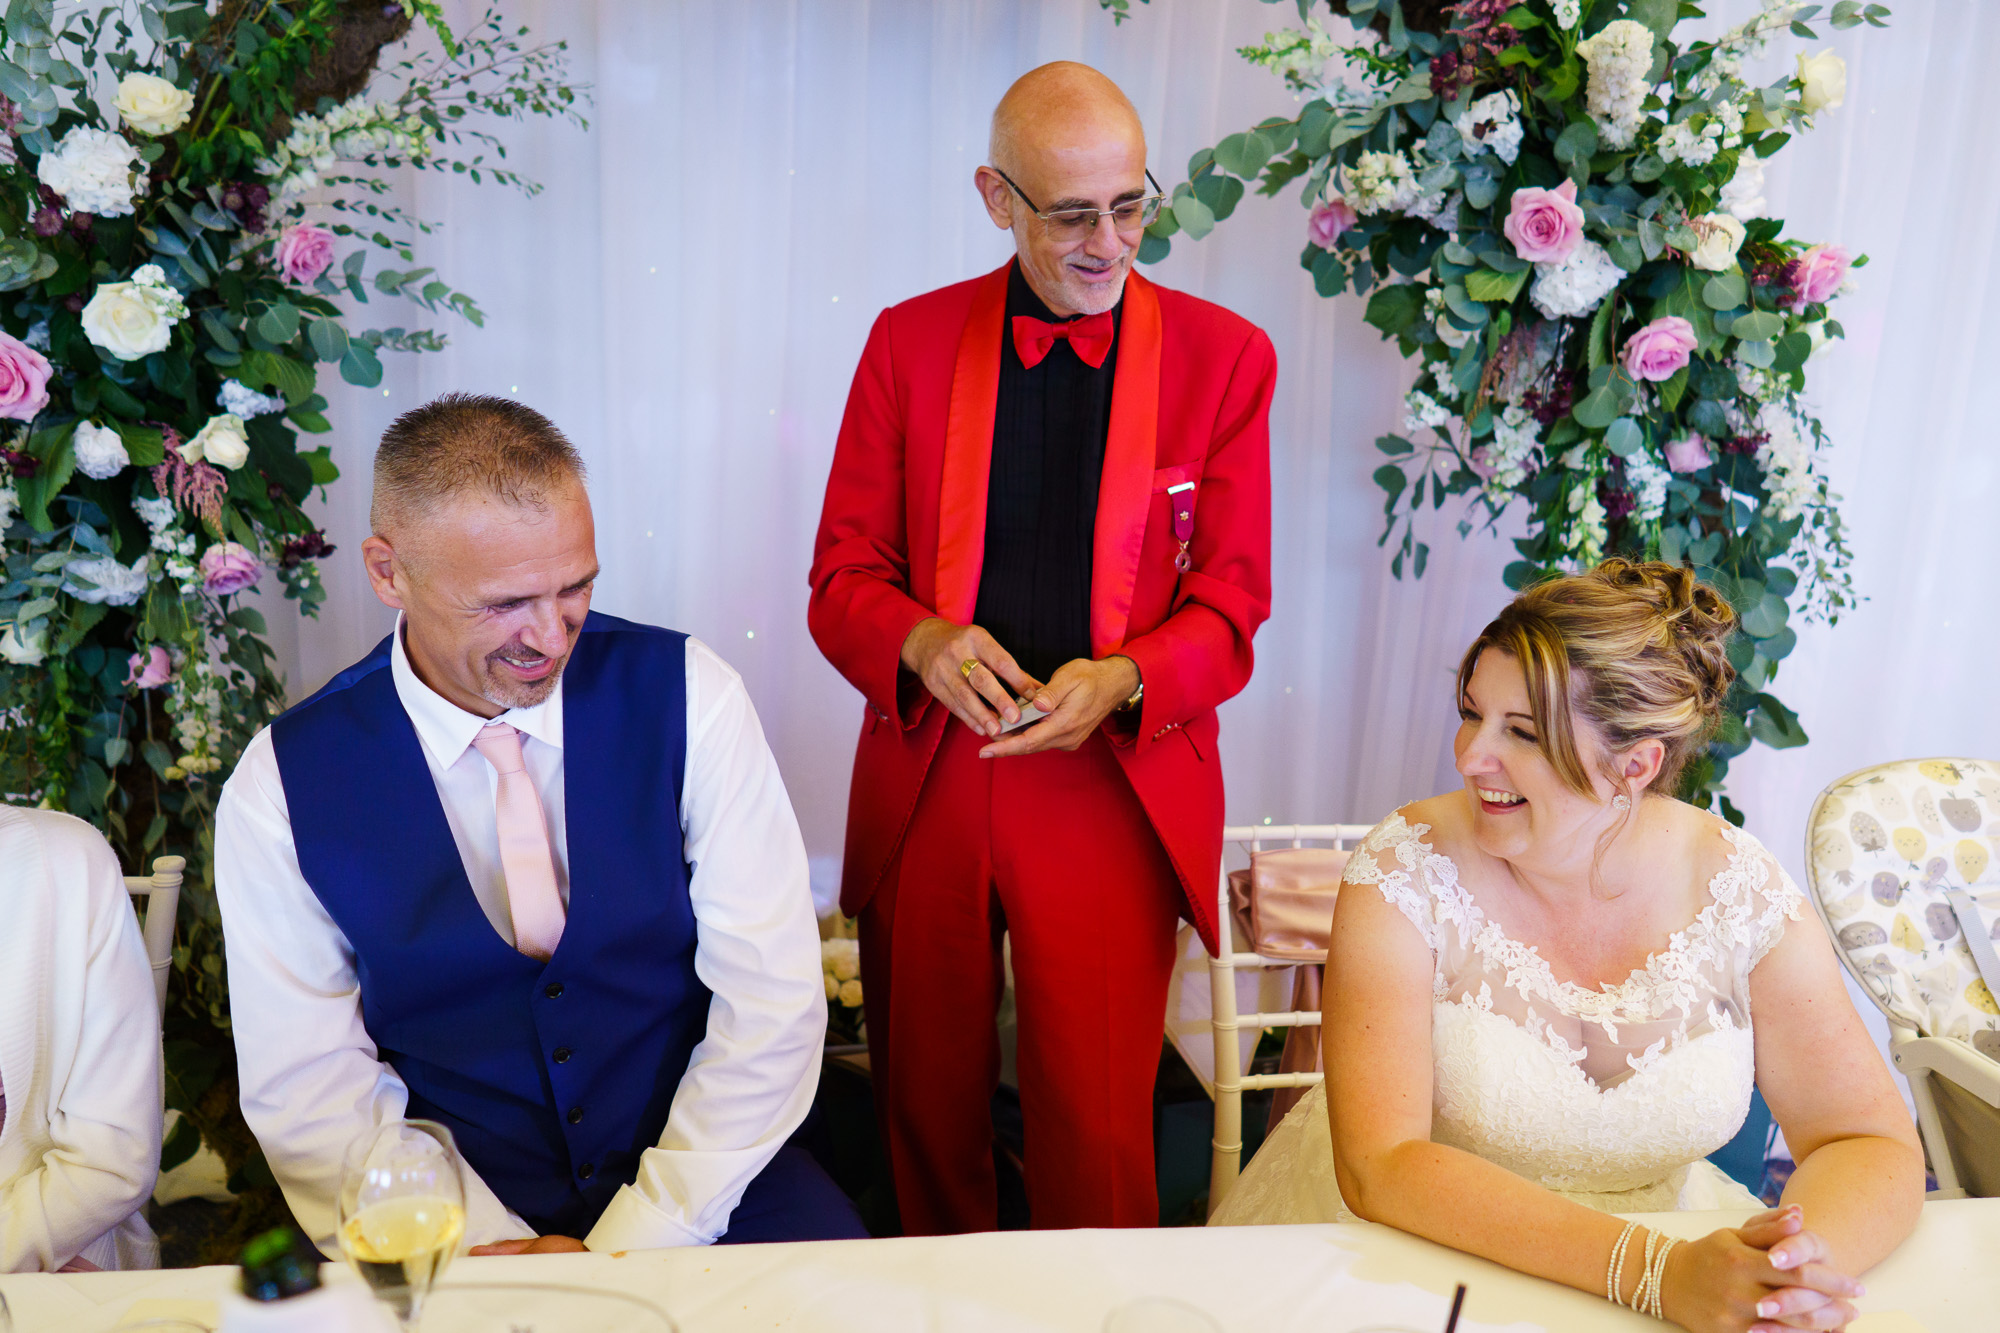 brdie and groom and magician at their wedding